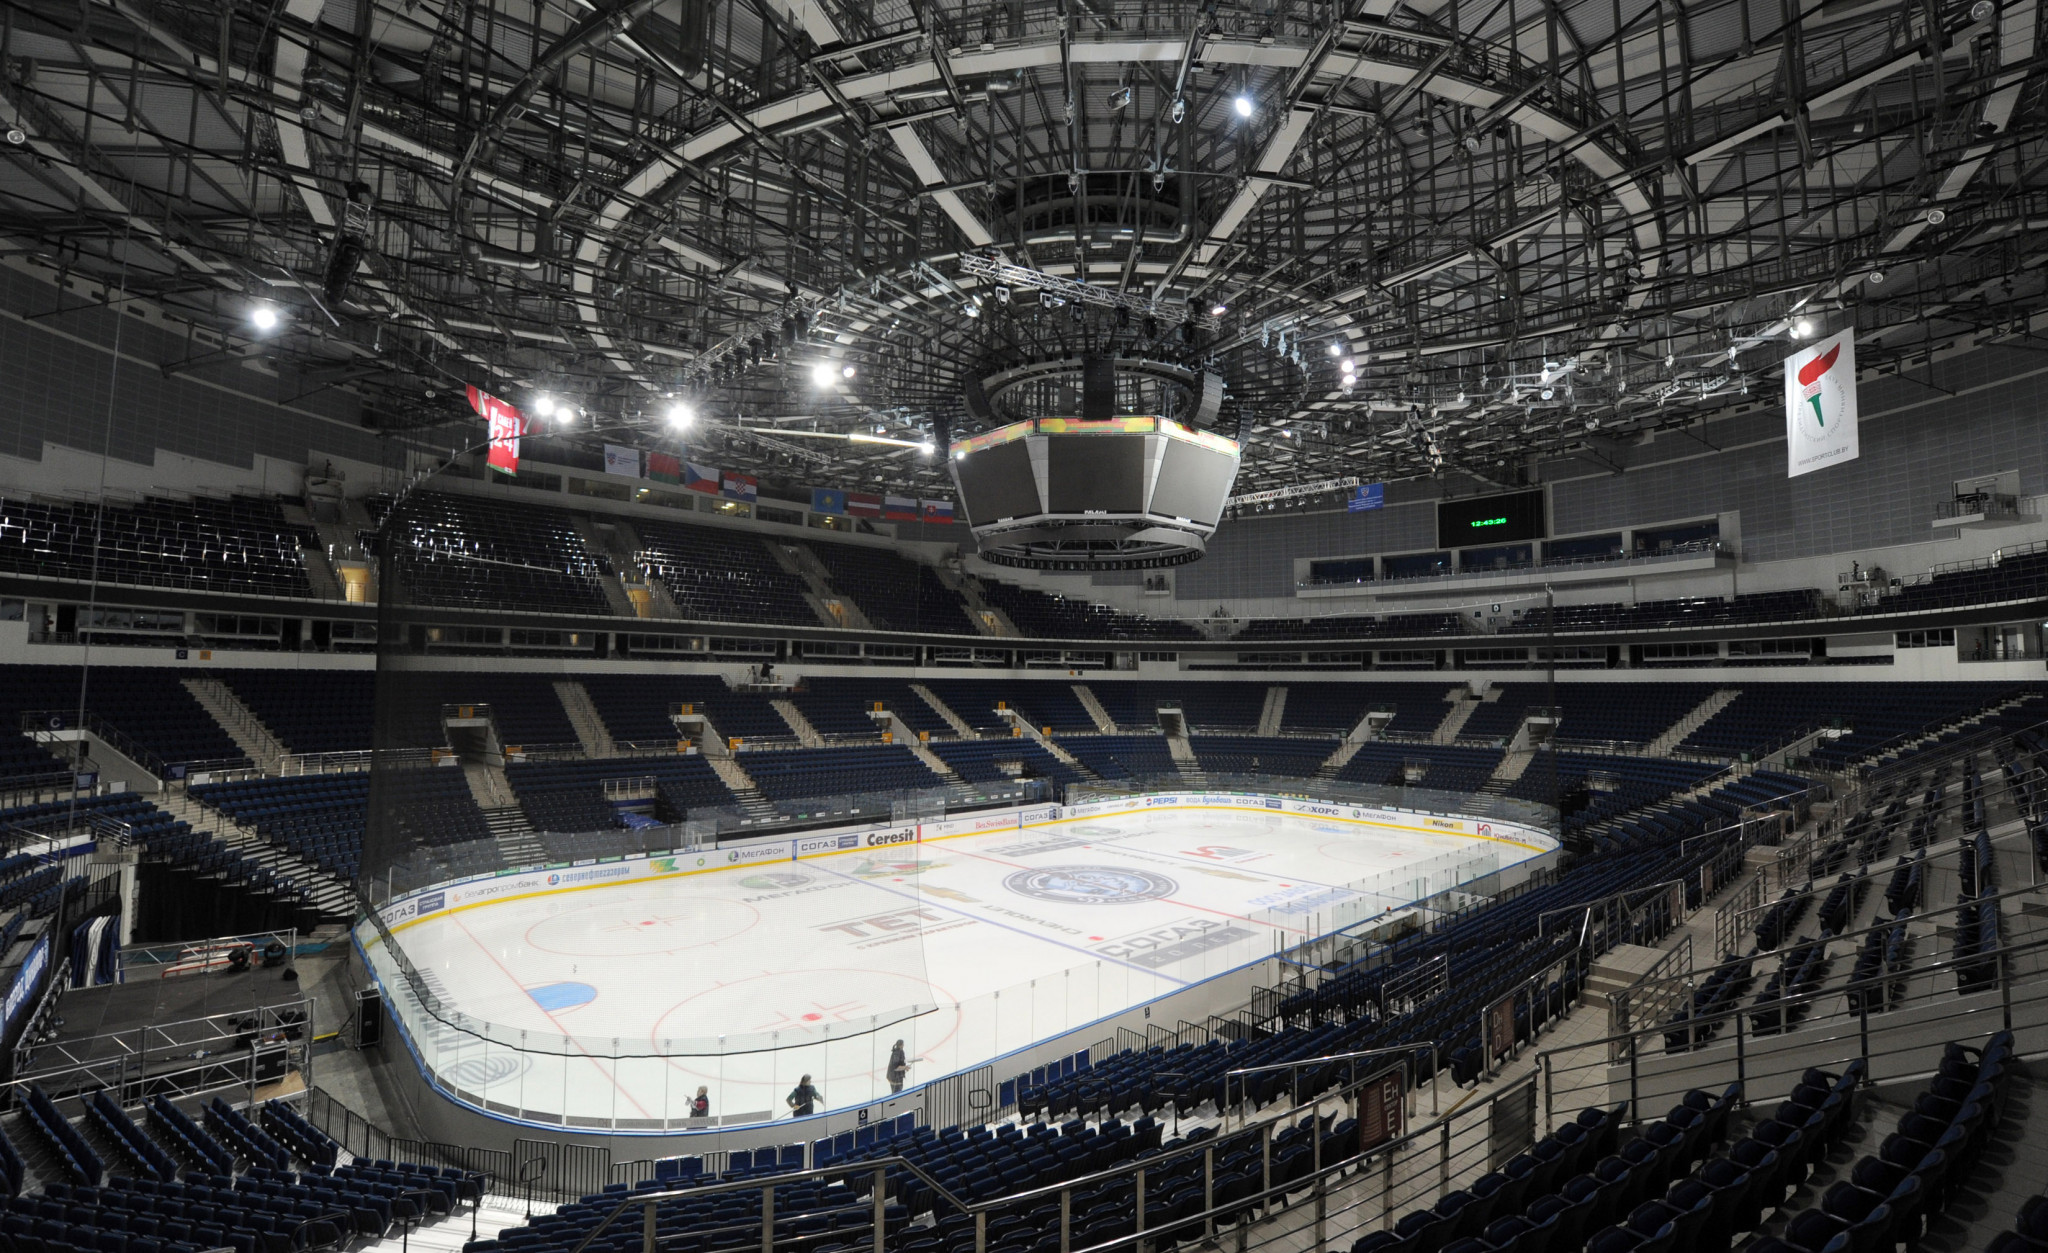 Minsk will no longer hold matches at this year's World Championships ©Getty Images